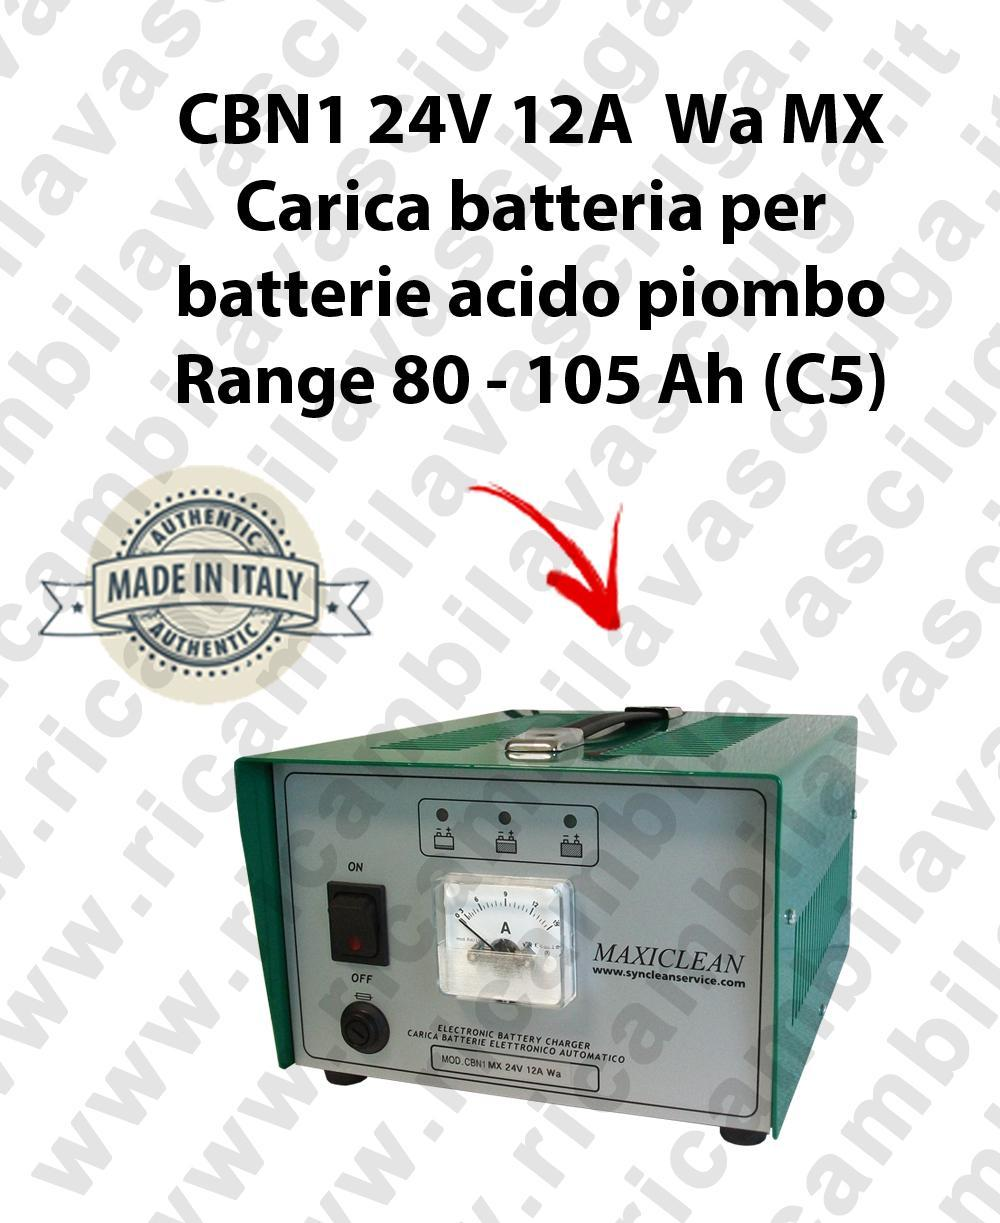 CBN1 24V 12A Wa MX carica batterie for acid plombe battery